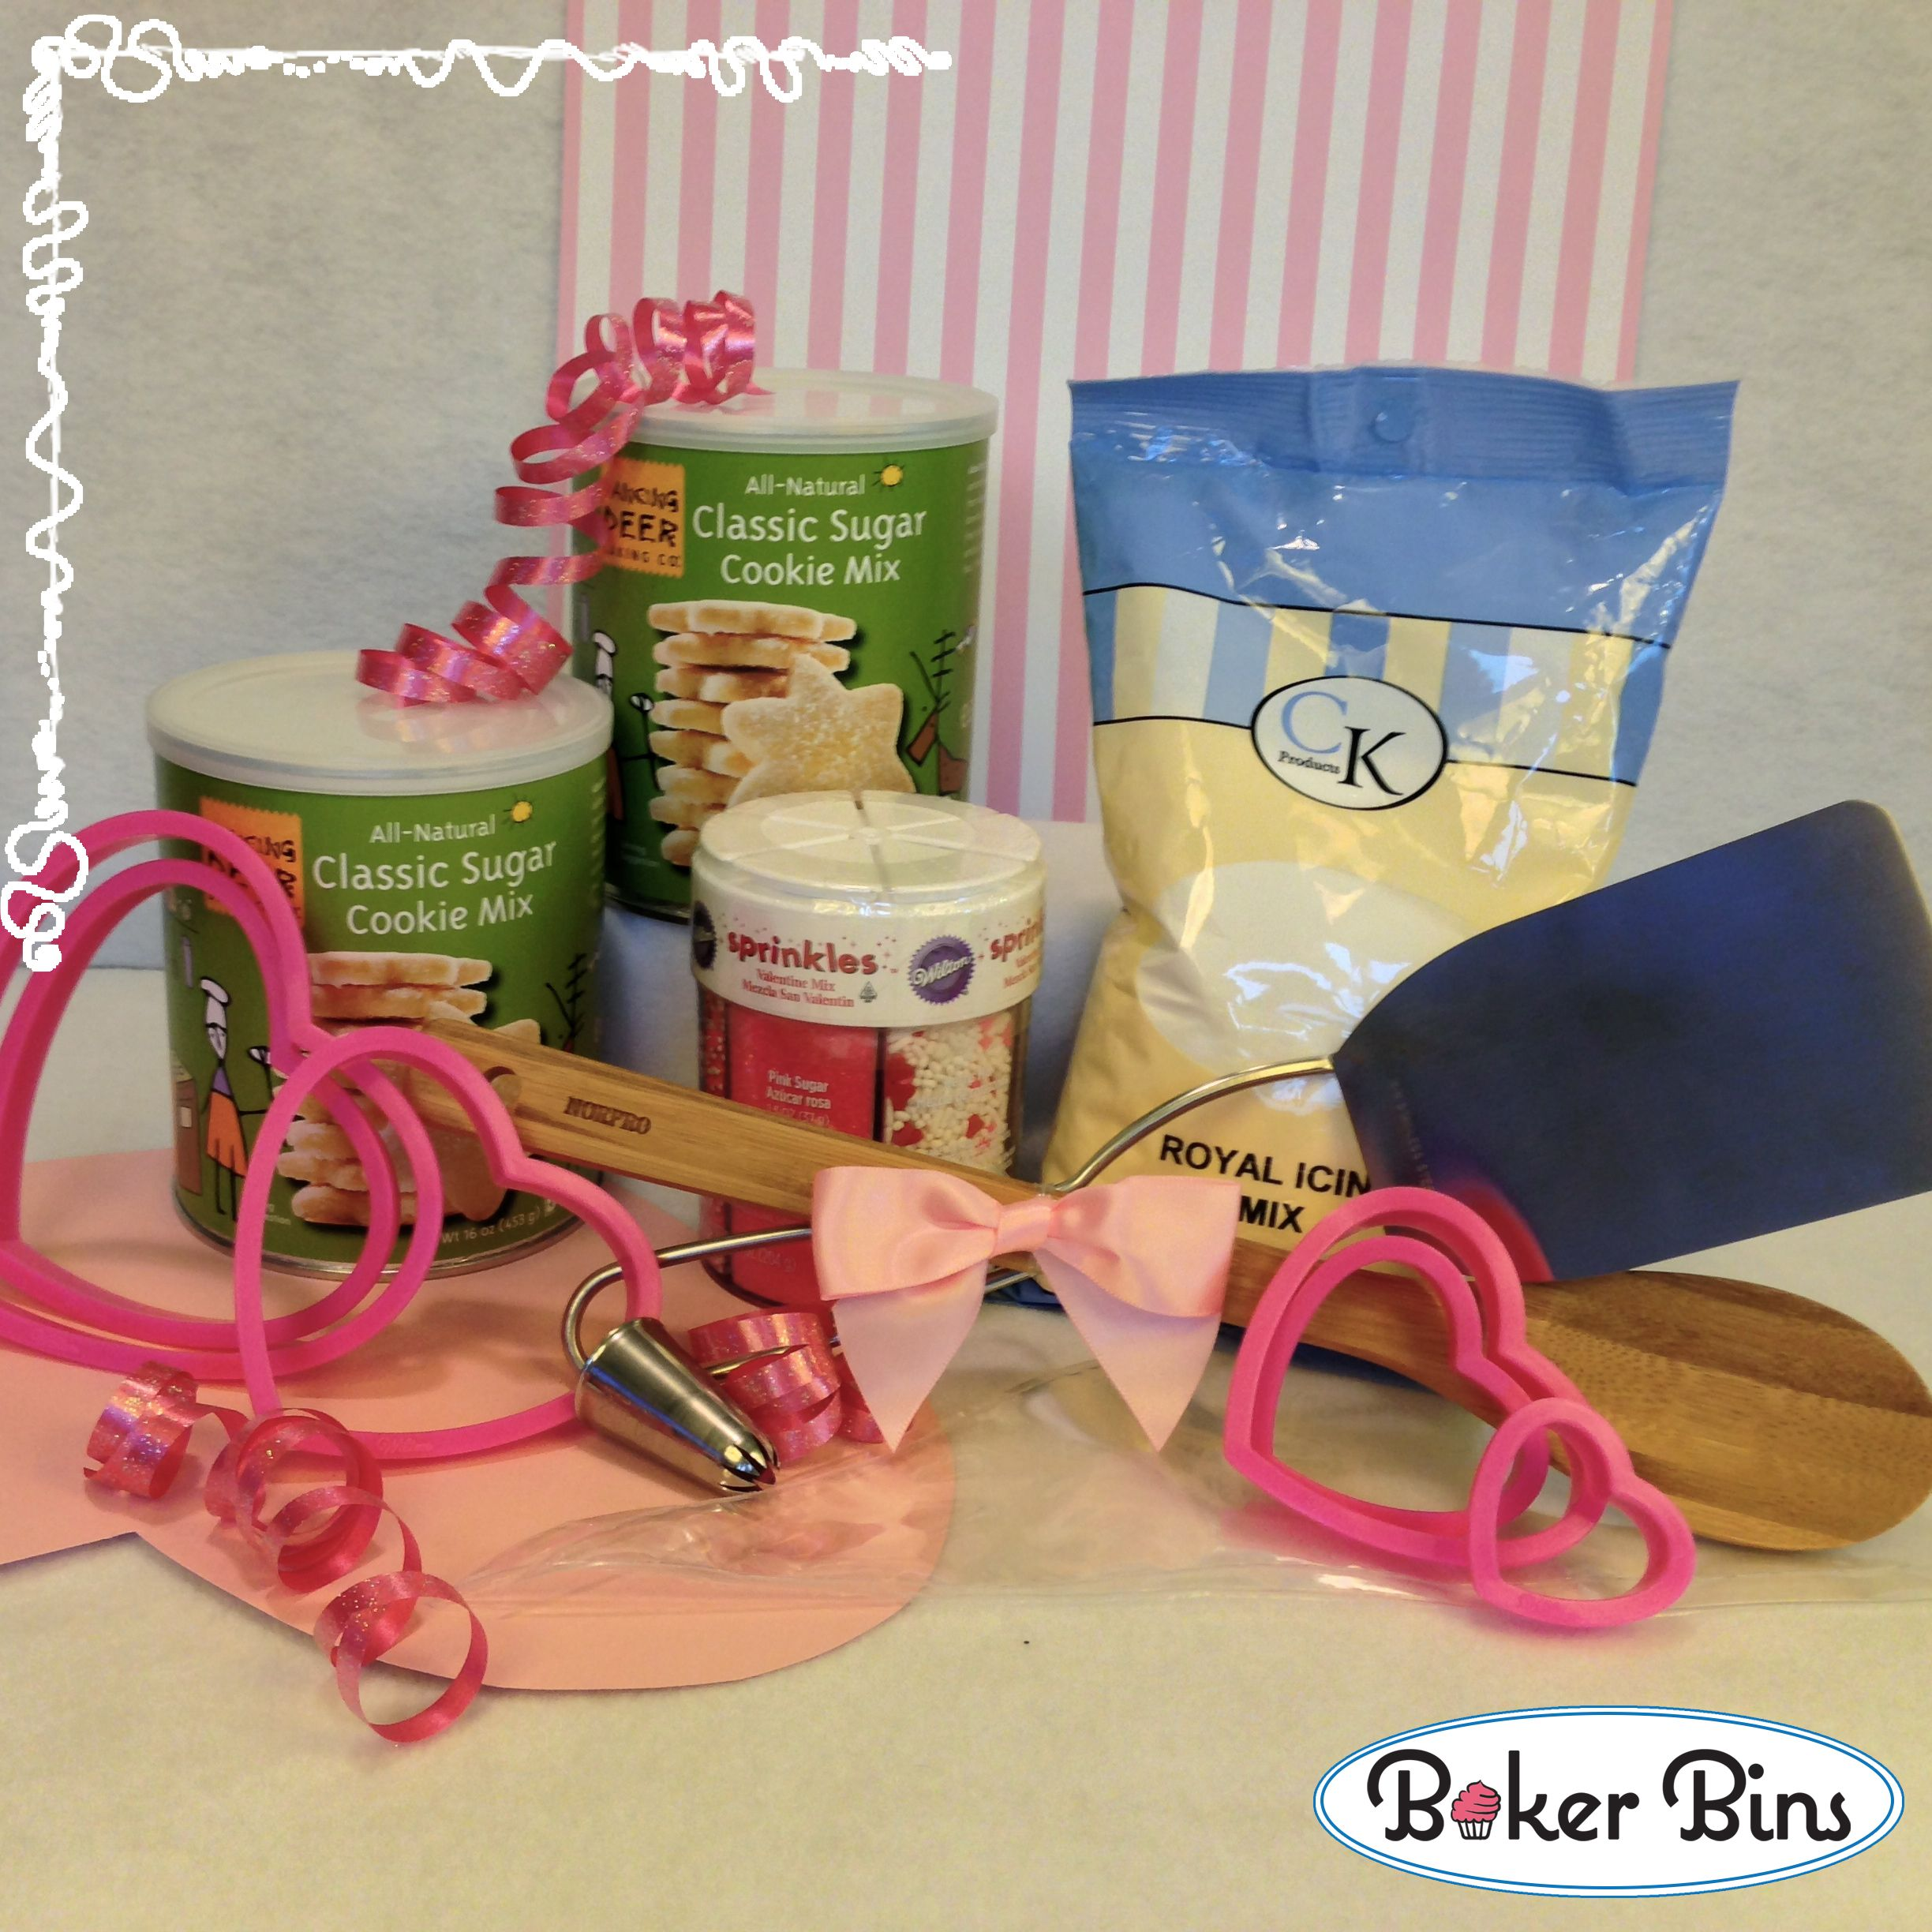 Fun new baking kits just in time for valentines day baker bins has fun new baking kits just in time for valentines day baker bins has gluten free negle